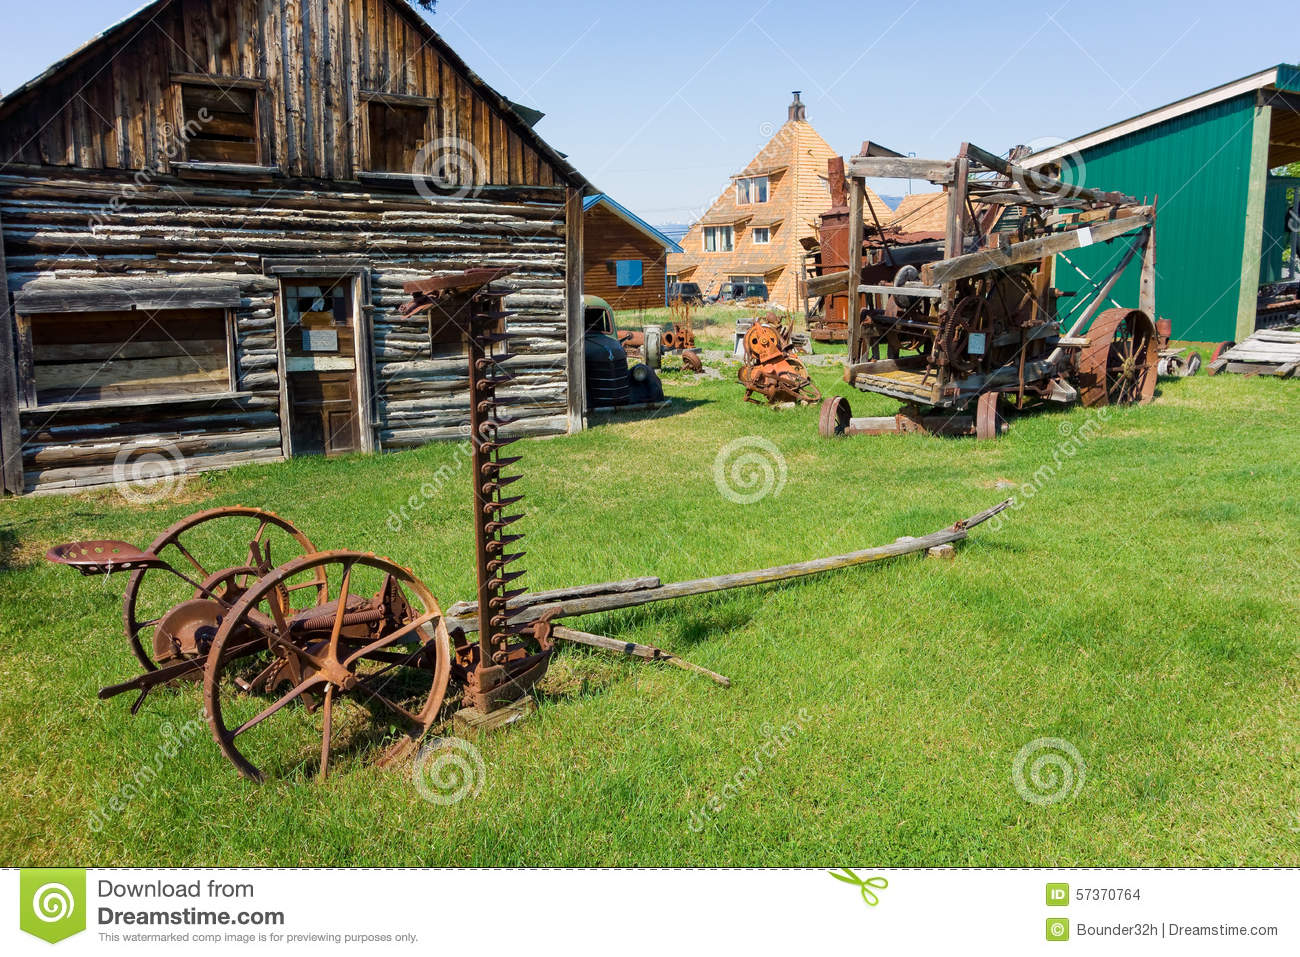 Old Agricultural Tools On Display At An Outdoor Museum In Northern.